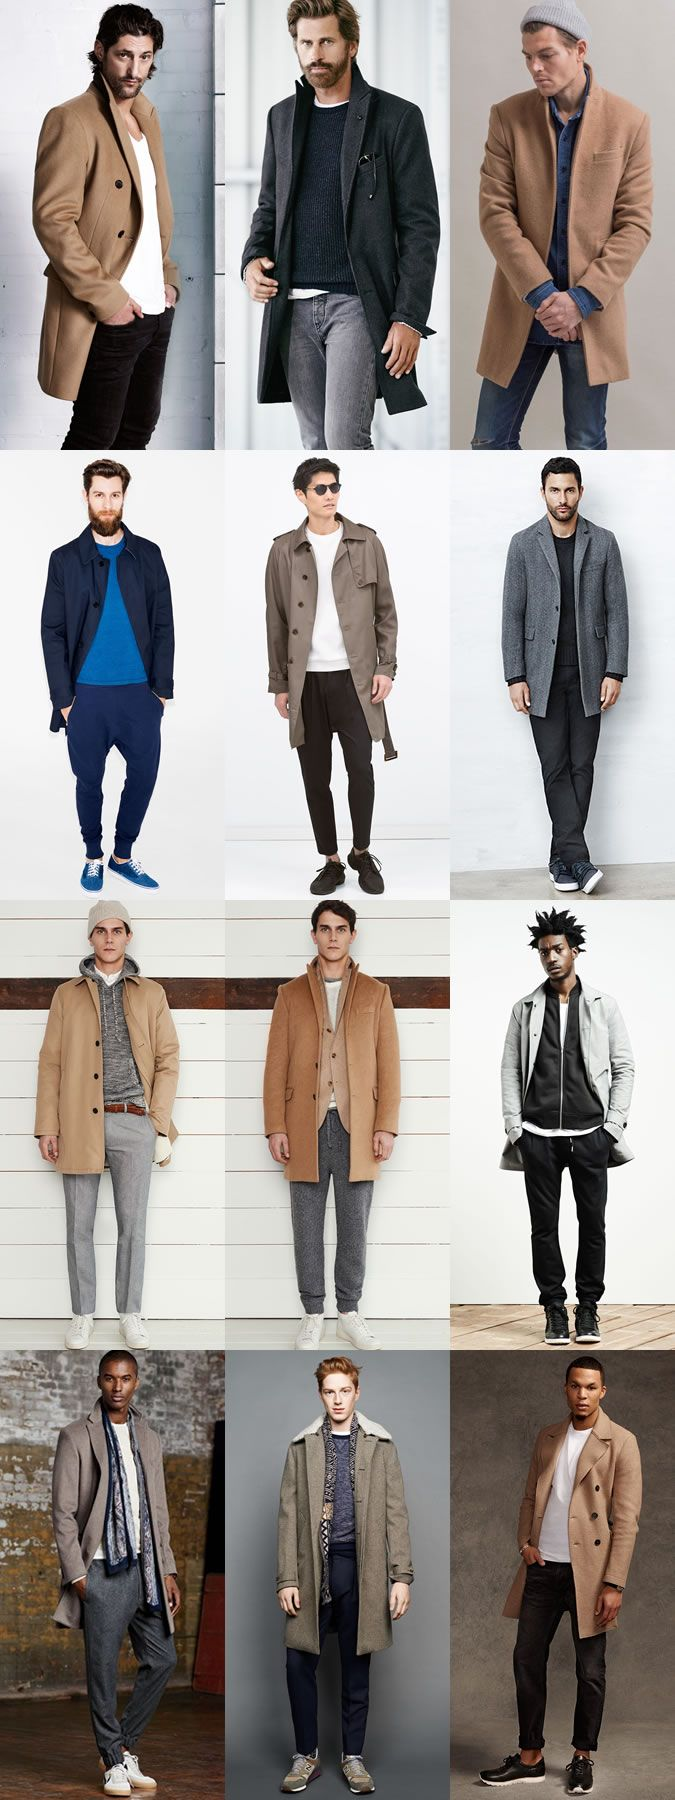 5 Great Combinations on Dressing Up-Dressing Down: 4. Commute Coat & Sunday Uniform Lookbook Inspiration